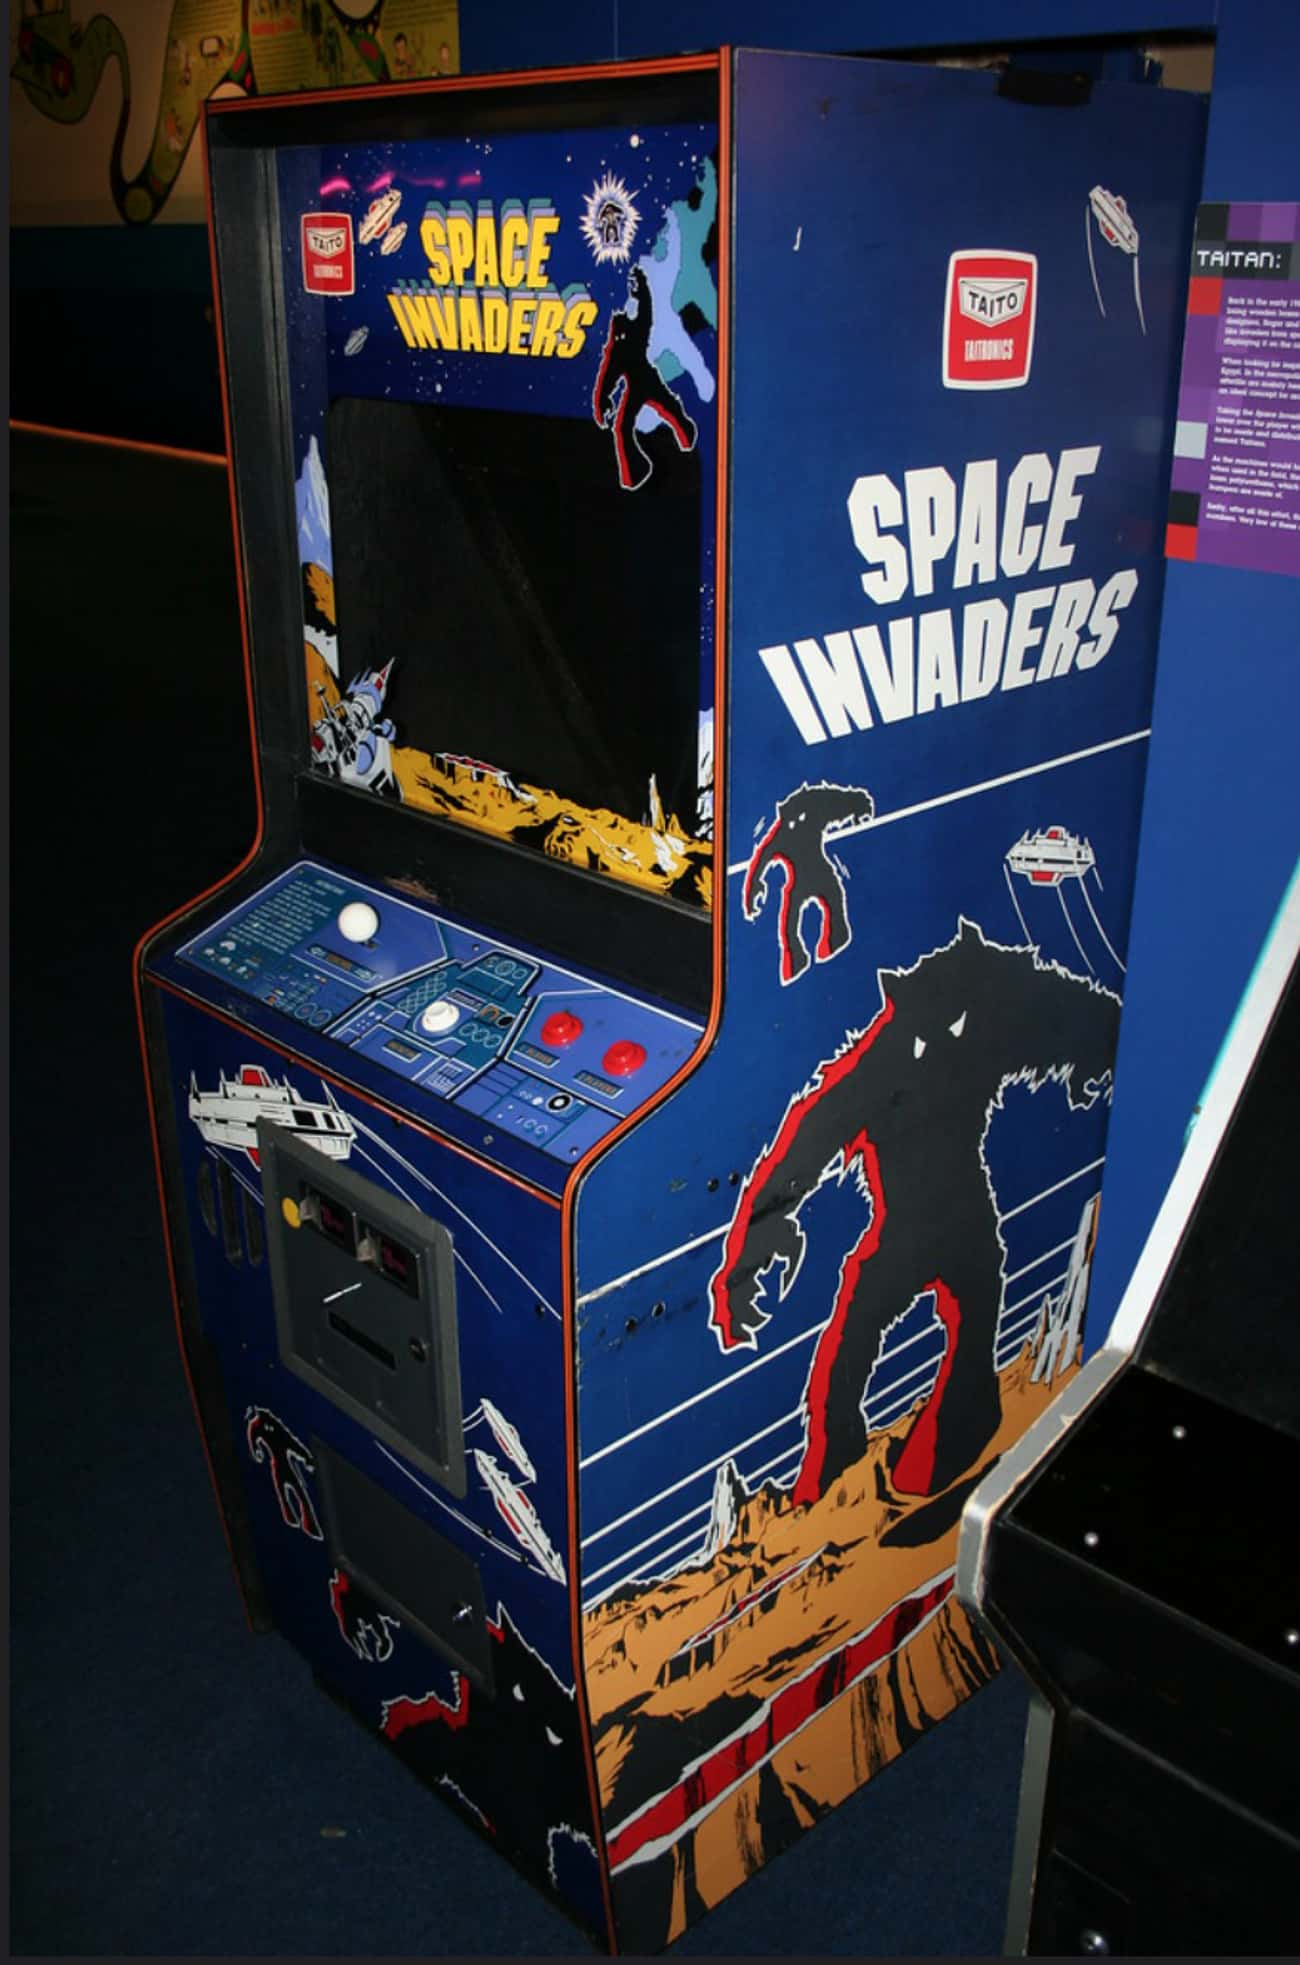 Space Invaders is listed (or ranked) 2 on the list The Coolest Arcade Game Cabinet Art Ever!